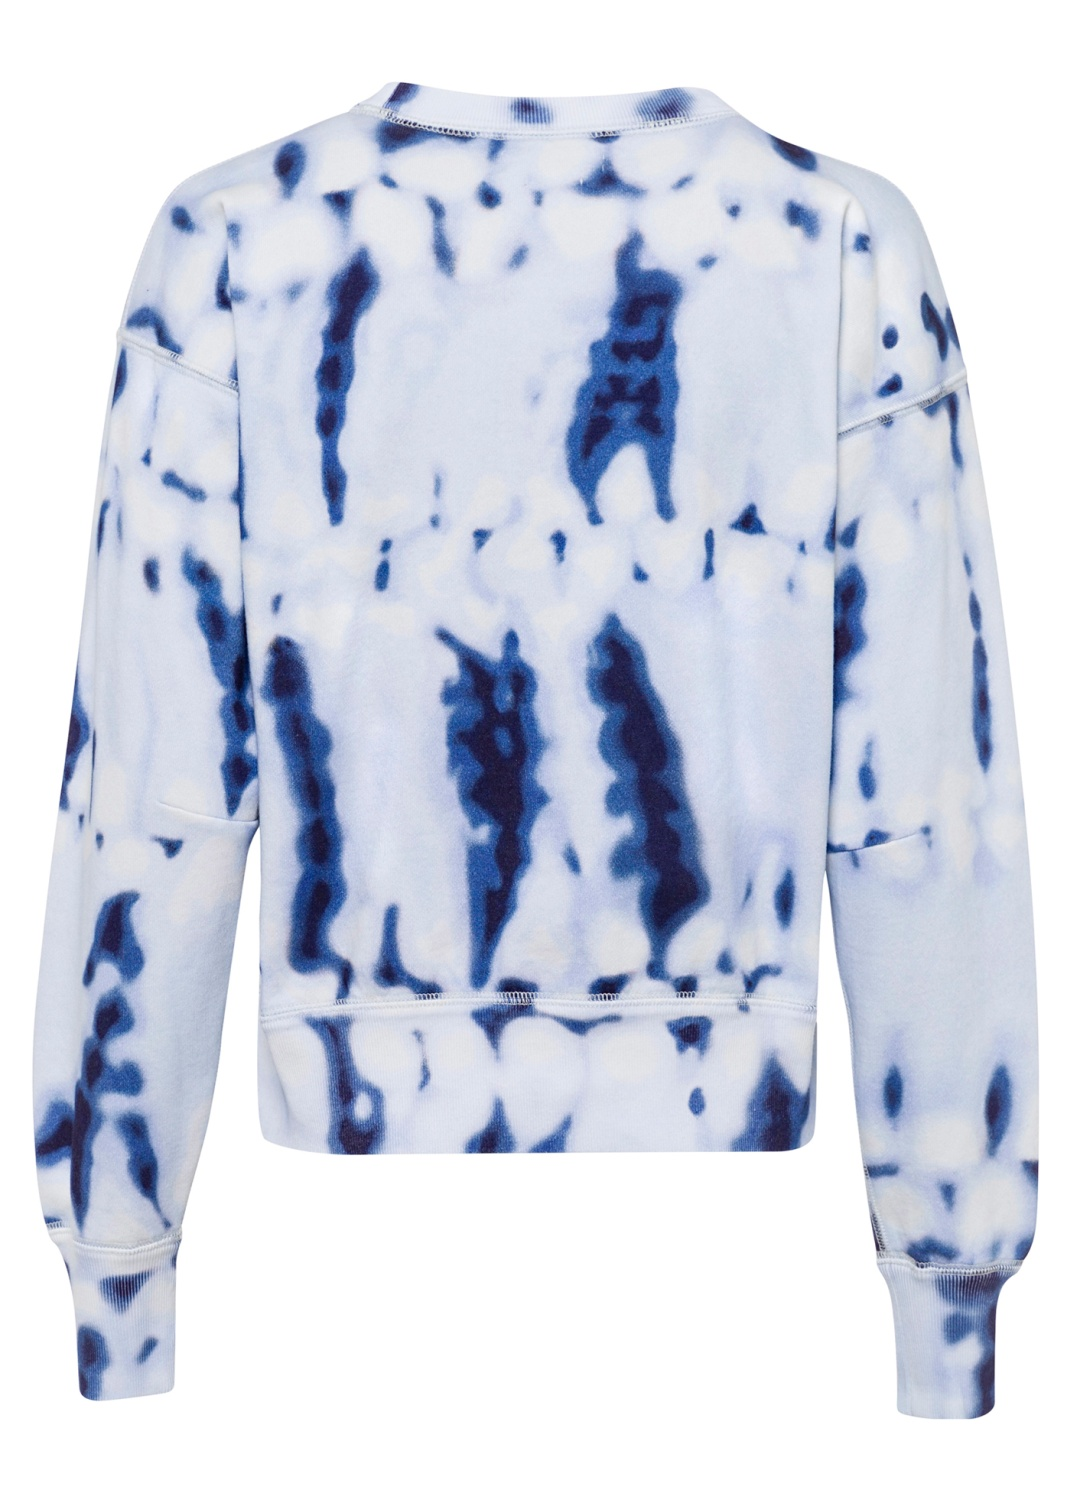 MOBYLI Sweat shirt image number 1